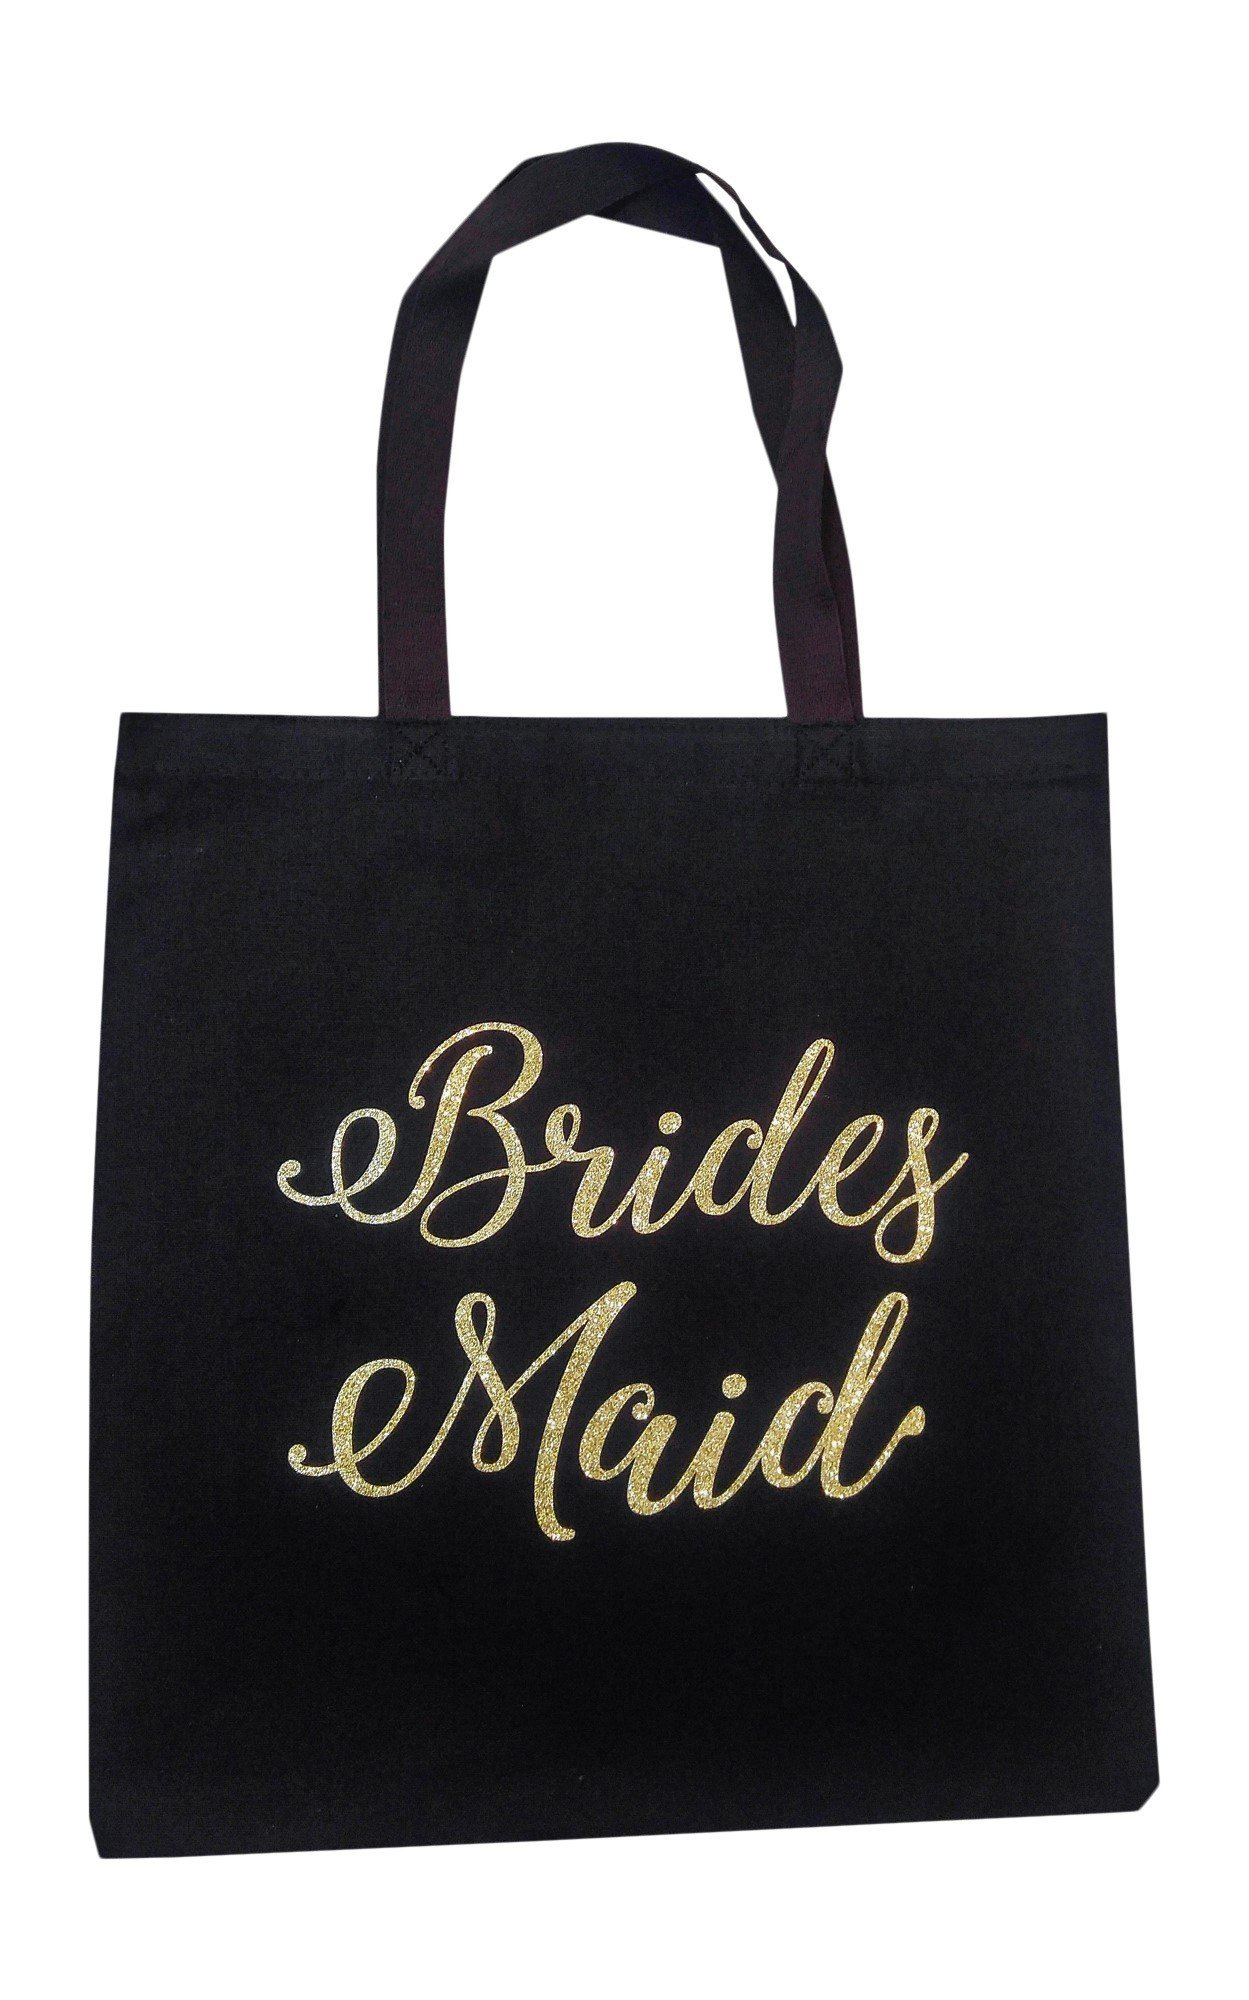 The Spoiled Office Wedding Party Bridal Tote Bag with Gold Lettering - Large Canvas 15'' x 16'' (Bridesmaid in Black)